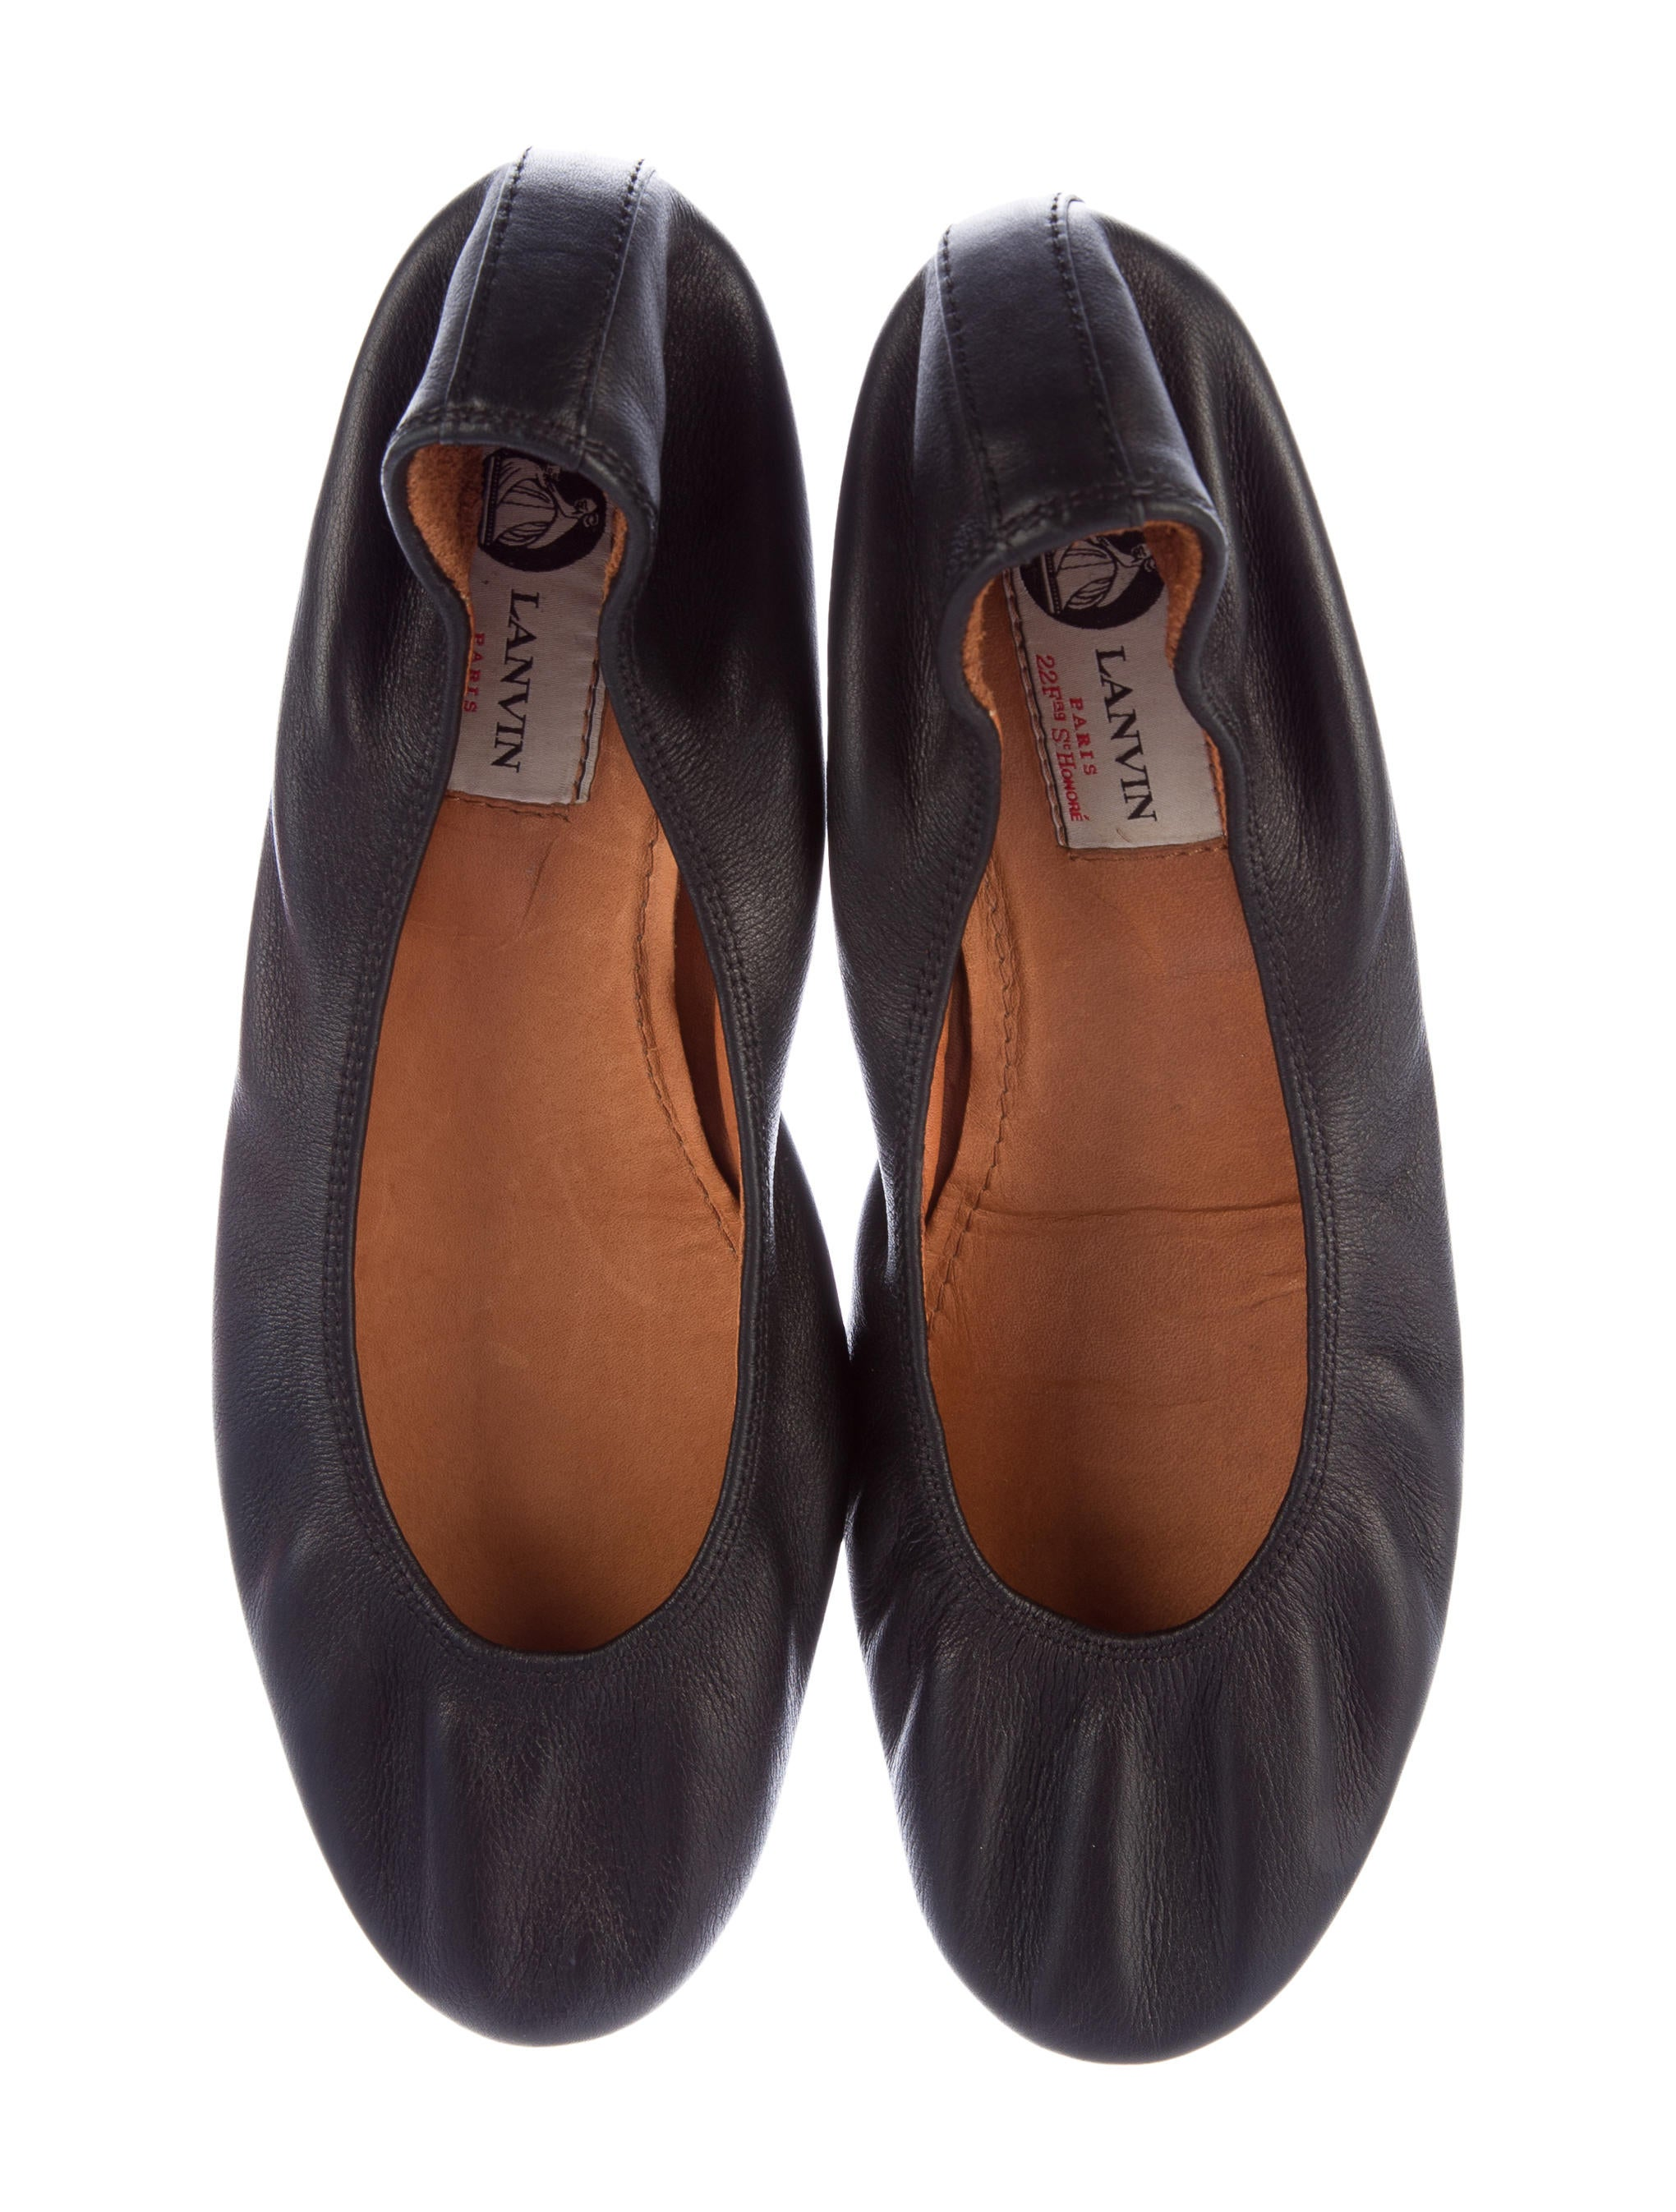 lanvin leather ballet flats shoes lan55406 the realreal